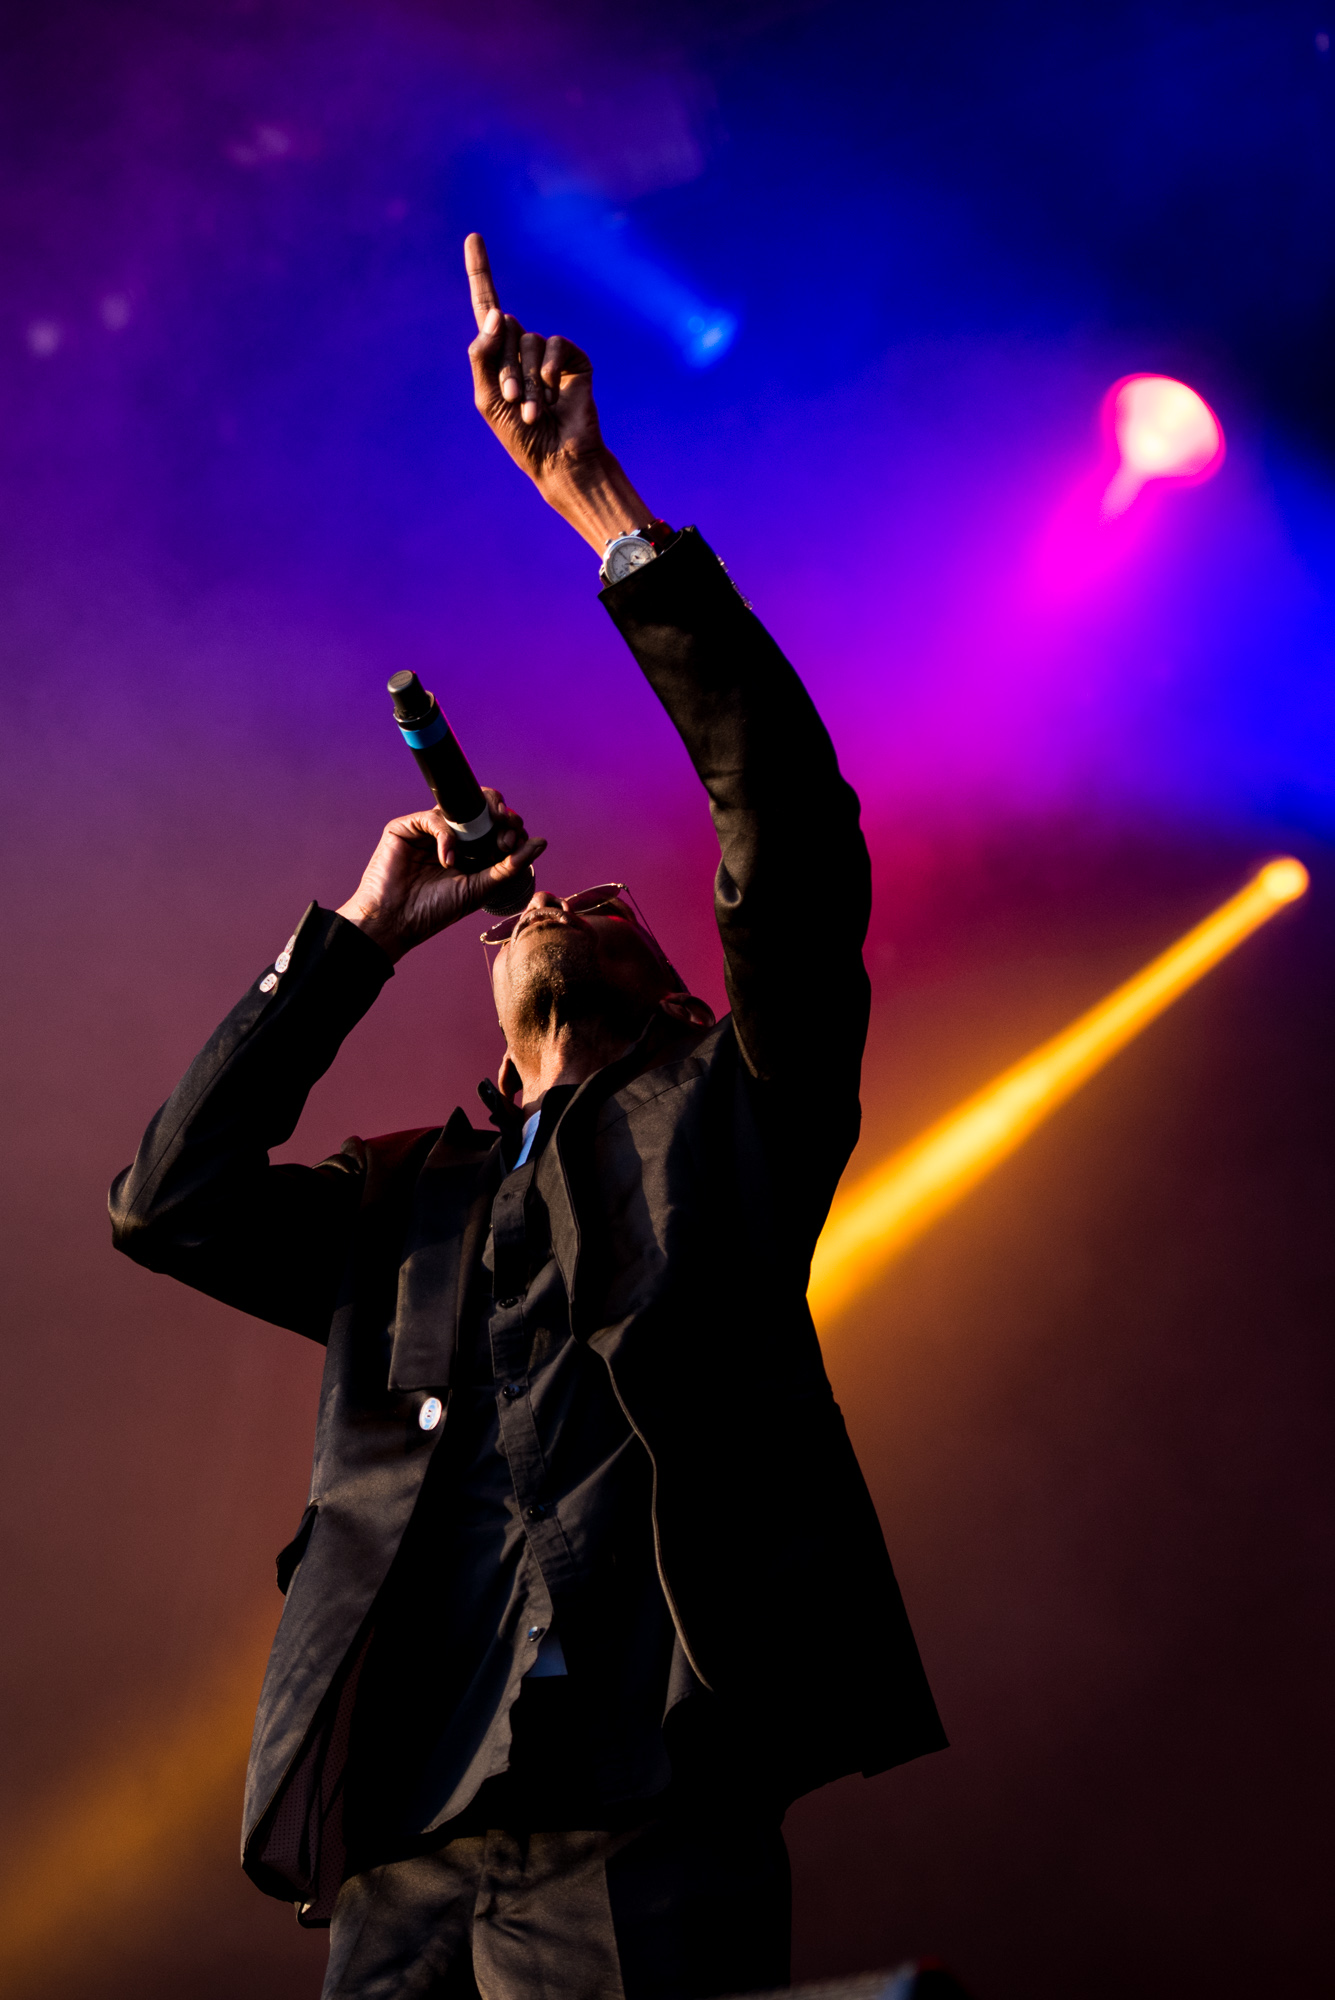 LIVE MUSIC PHOTOGRAPHER IRELAND DUBLIN 3 ARENA OLYMPIA THEATRE FAITHLESS_-2.JPG